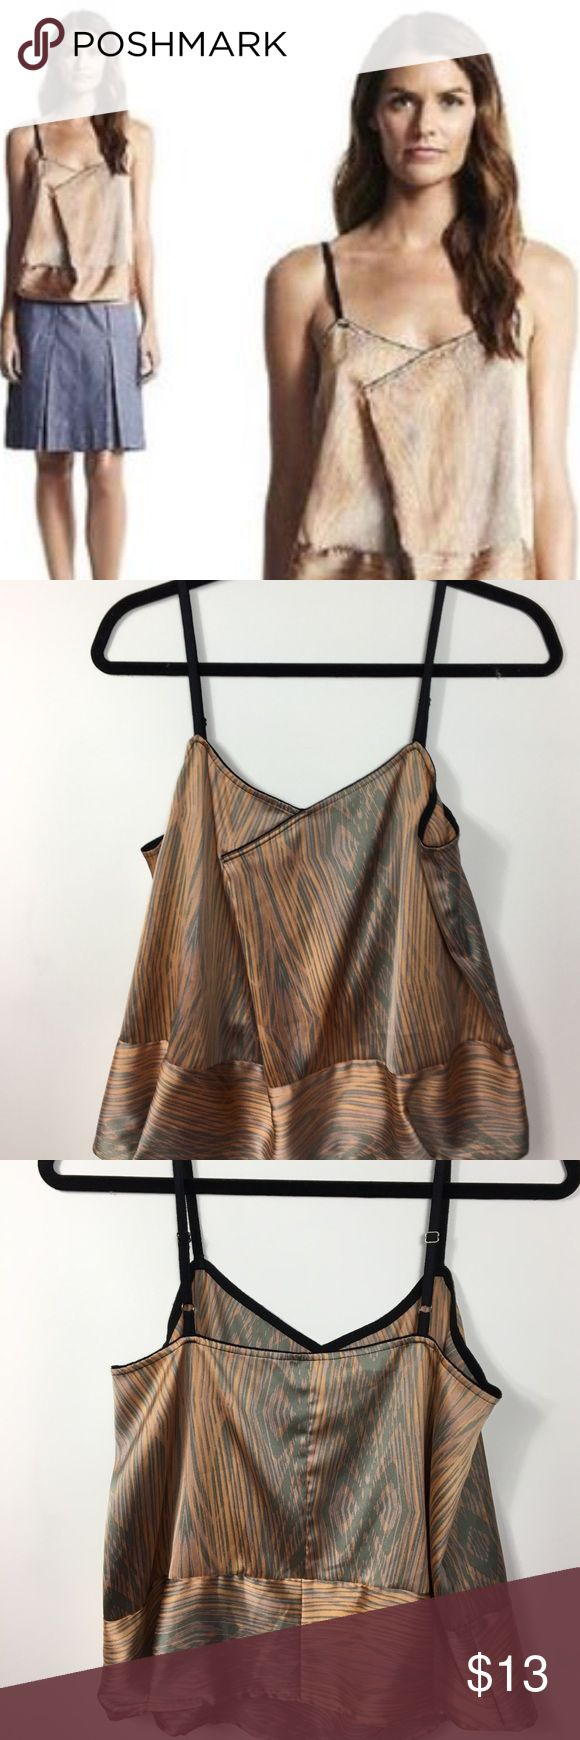 "Derek Lam for Design Nation>wood grain tank EUC From the Derek Lam for Design Nation collection, this is the contrast ""wood grain"" darted tank top. Adjustable straps. Burnt orange, sage and dark lilac colors. Only worn a handful of times, EUC. TTS. Derek Lam Tops Tank Tops"